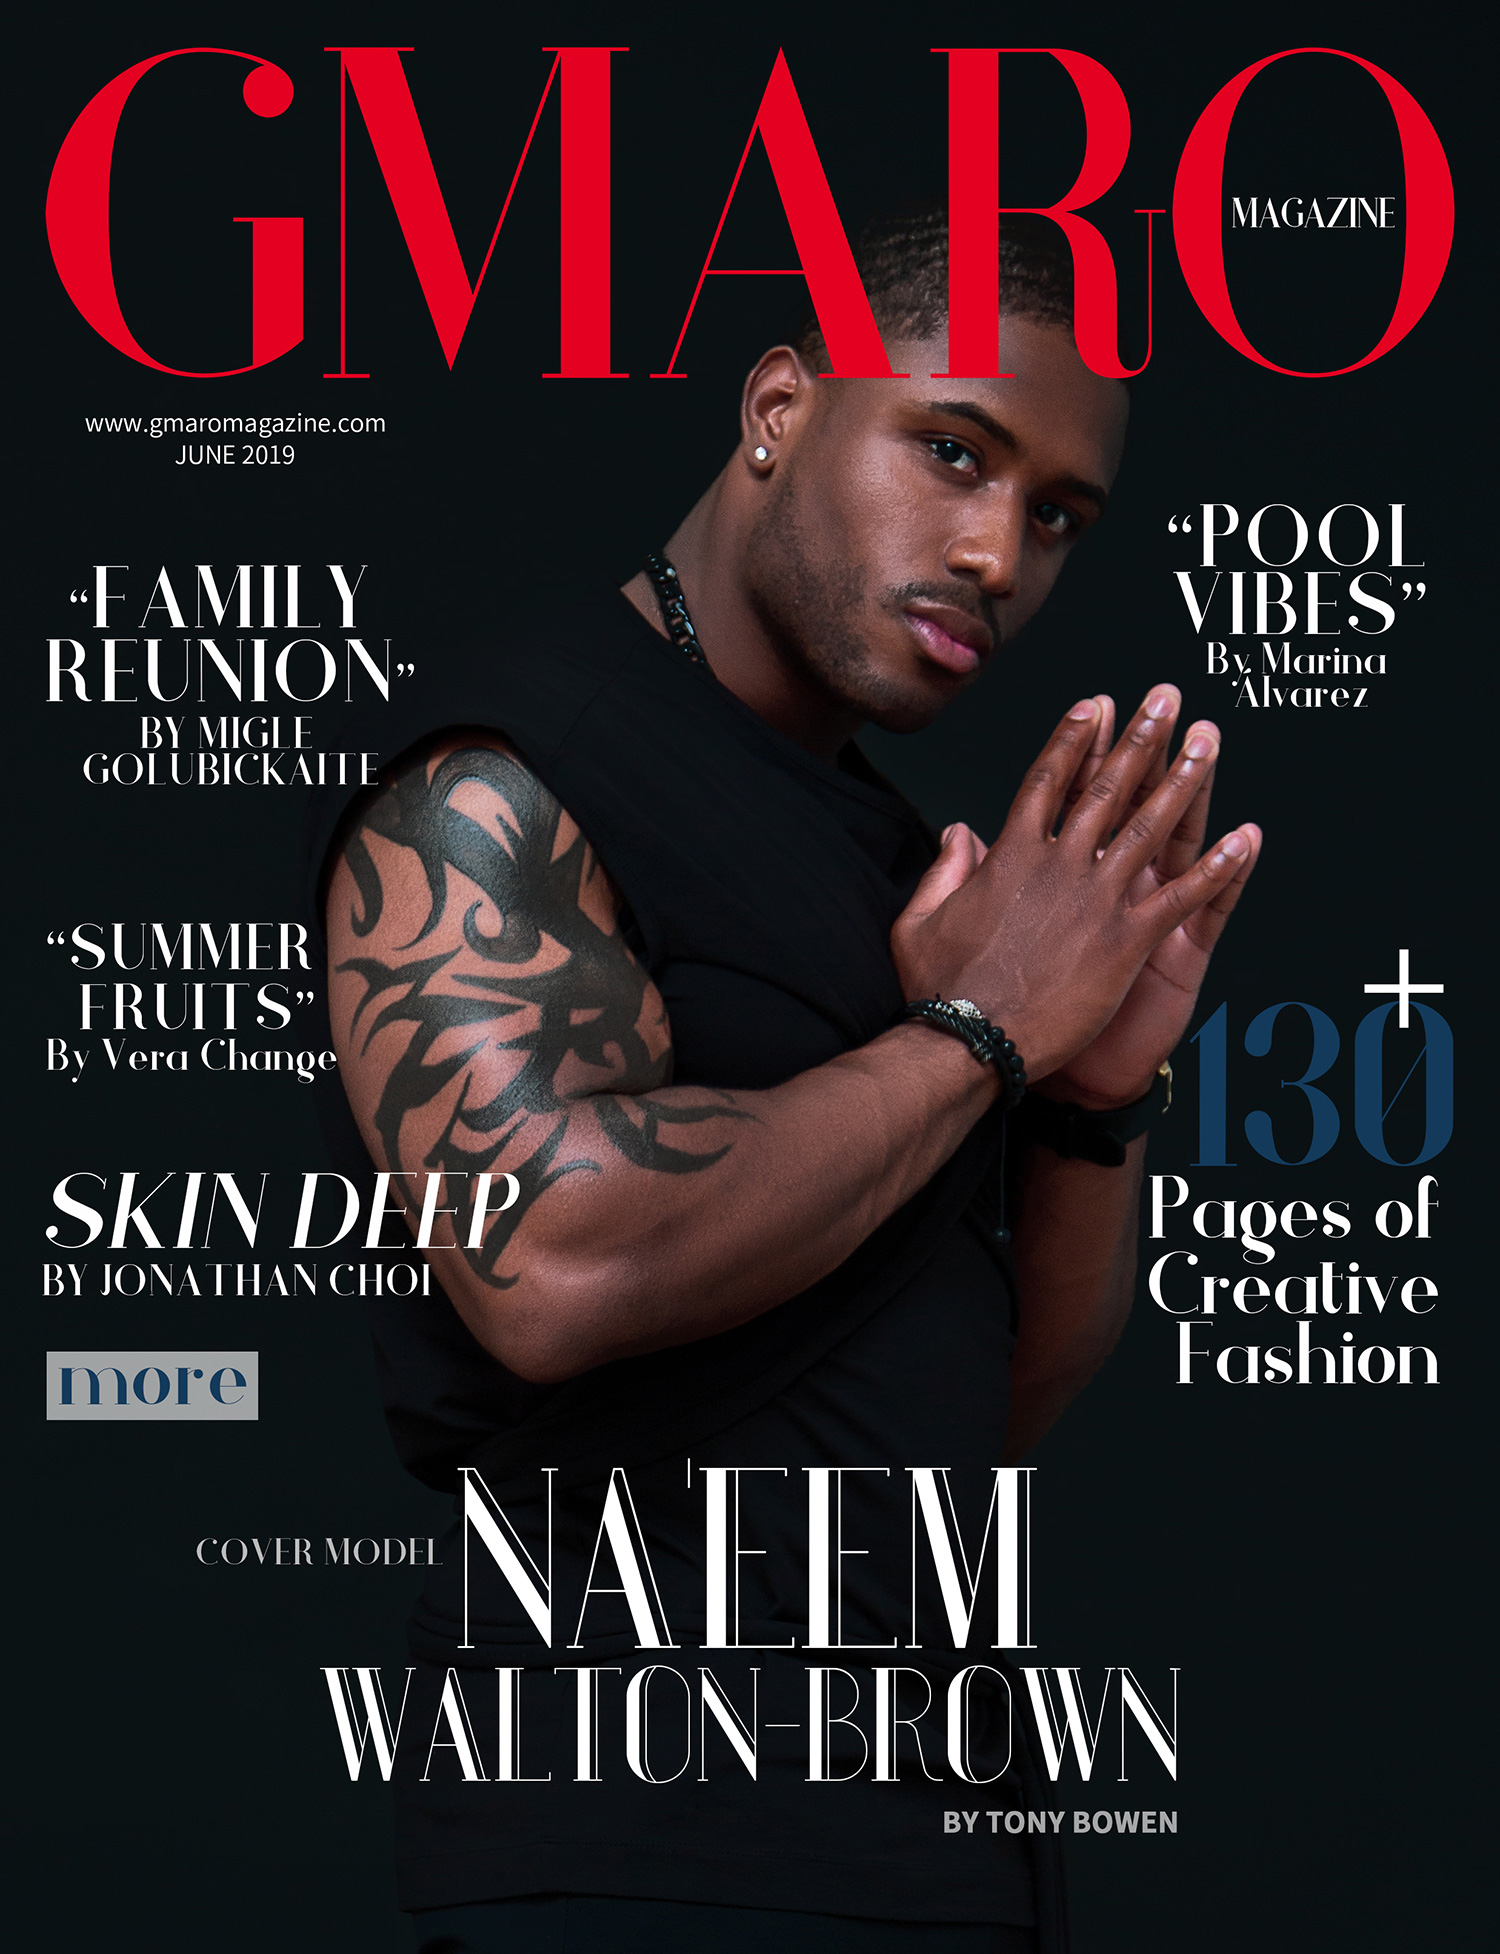 GMARO Magazine #03 JUNE 2019